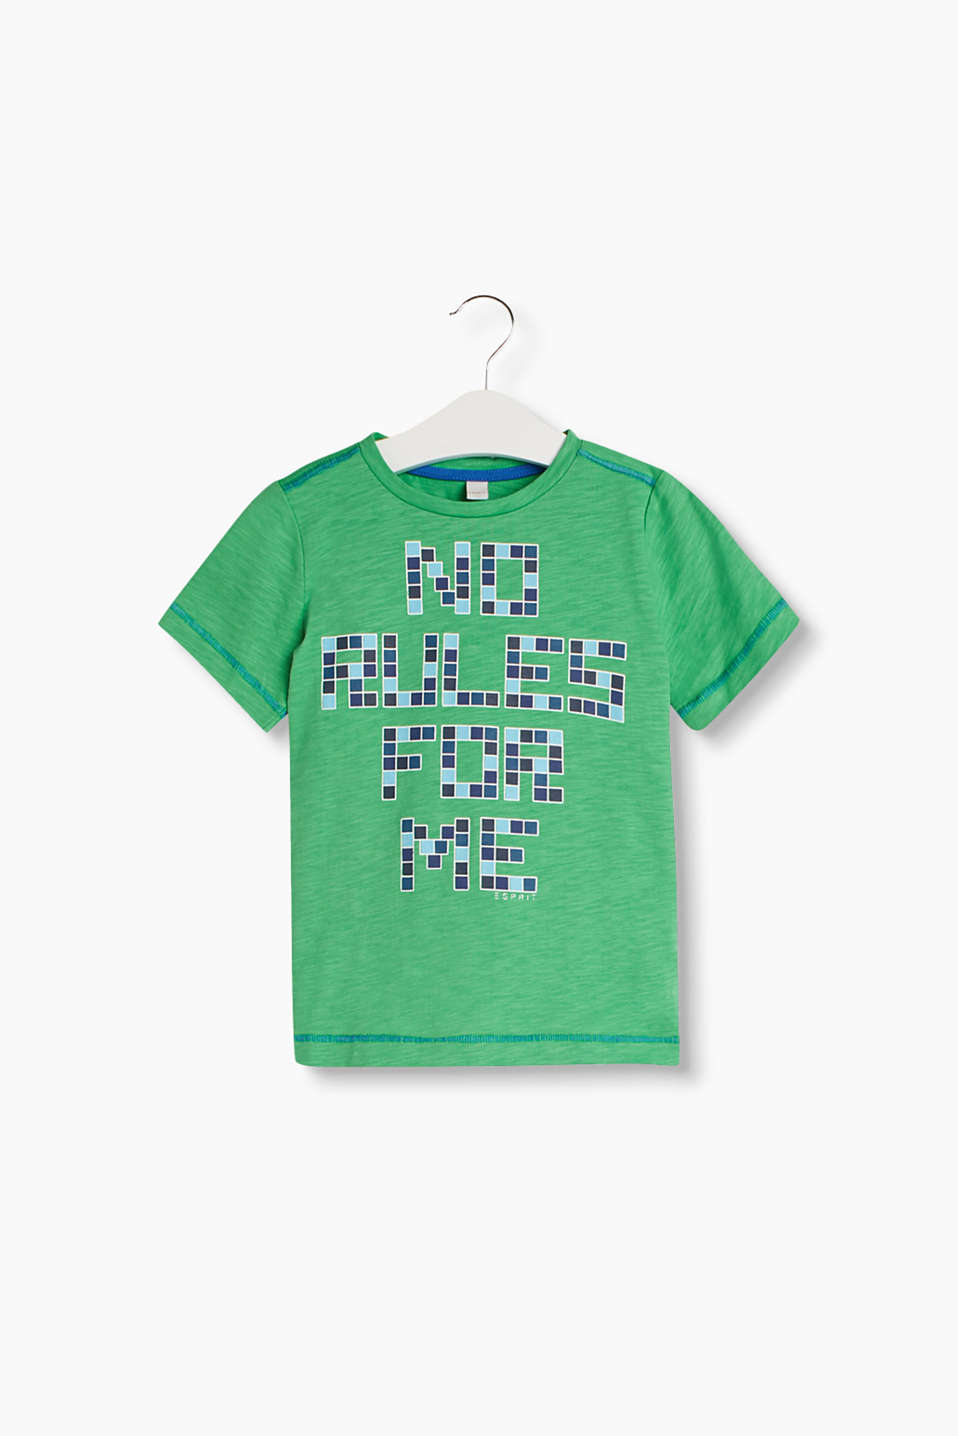 Soft melange T-shirt with a pixel print and contrasting colour, decorative stitching